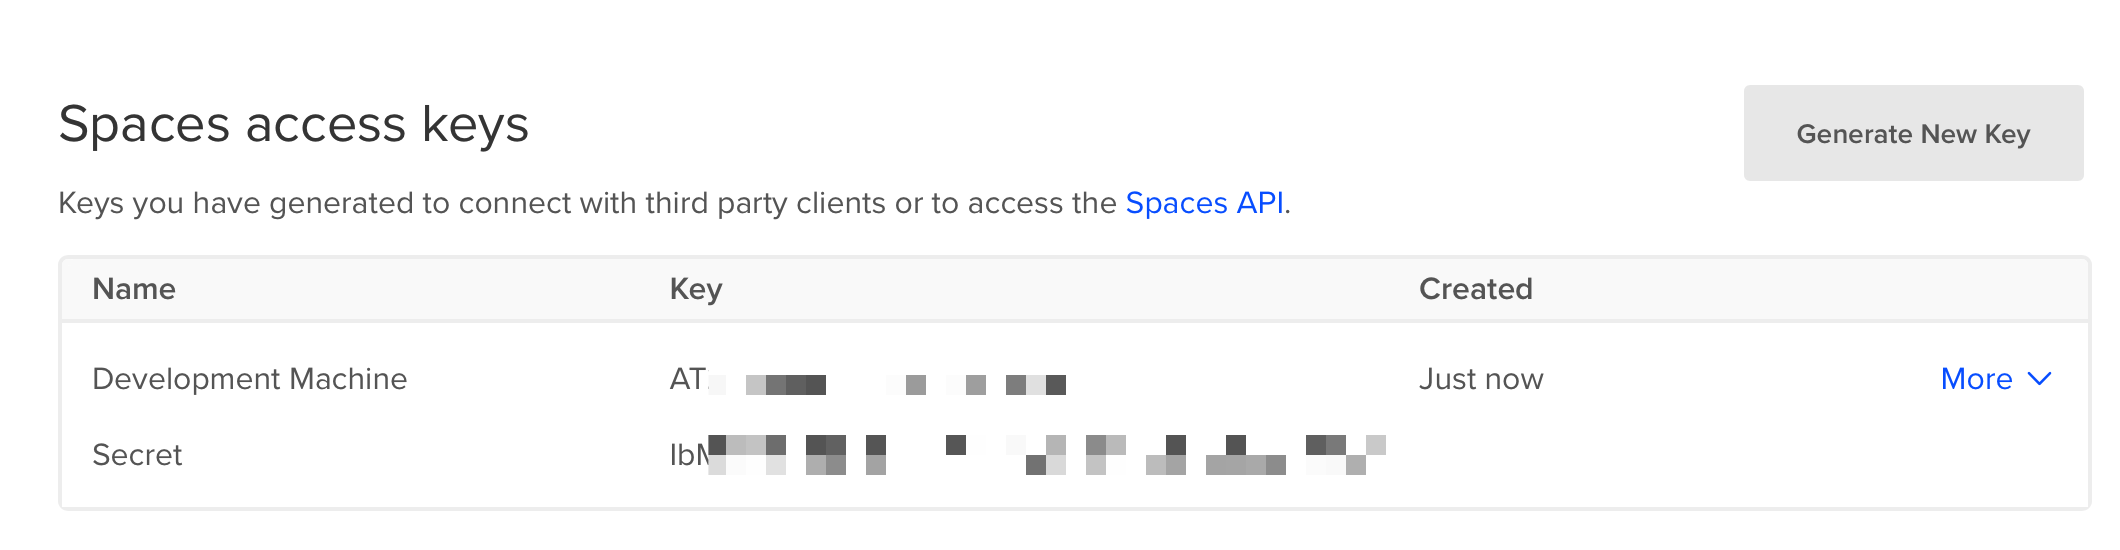 A screenshot showing a Spaces access key